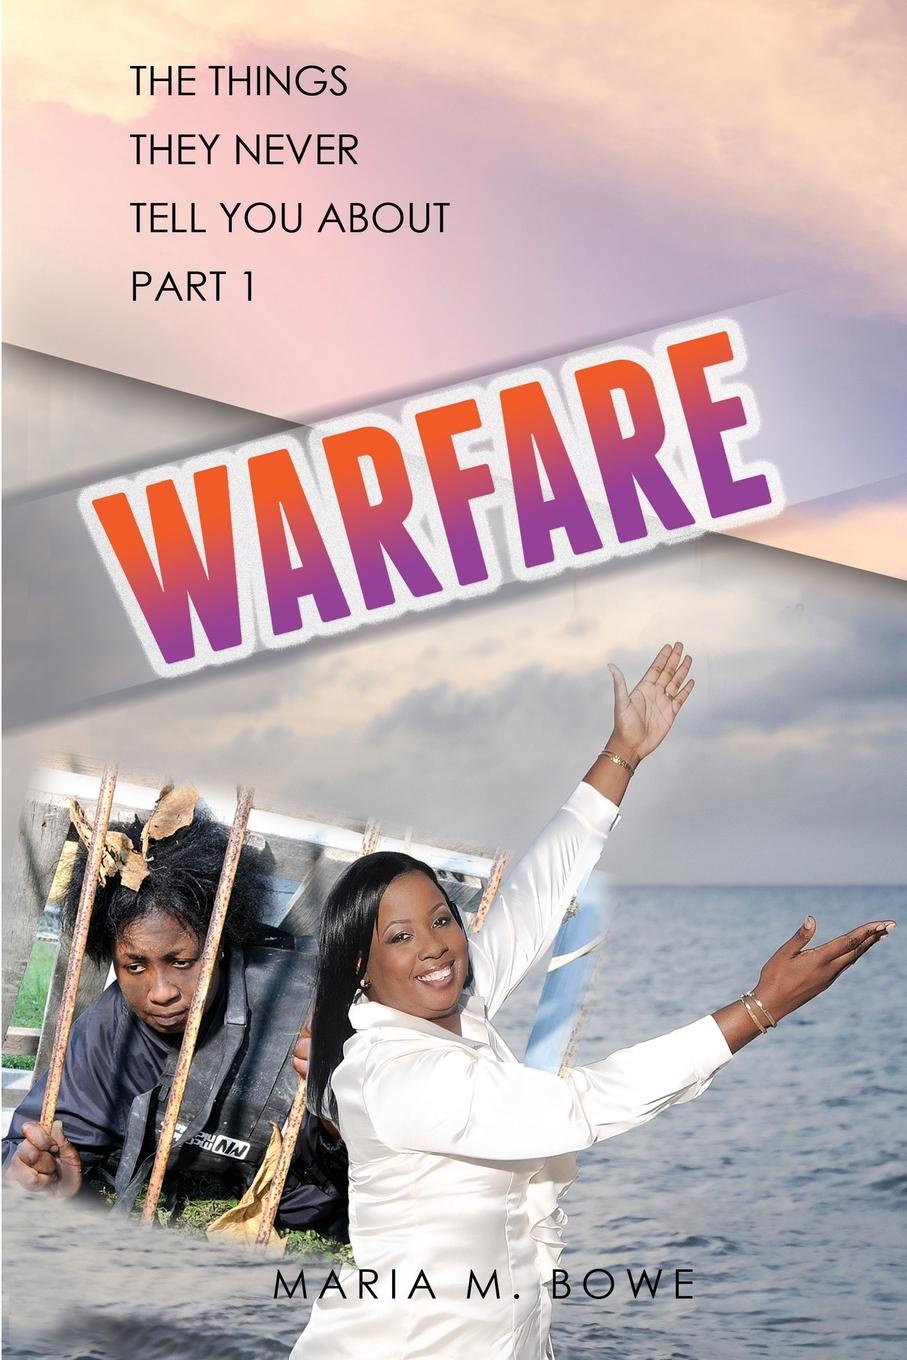 Maria M. Bowe WARFARE. THE THINGS THEY NEVER TELL YOU ABOUT, PART 1